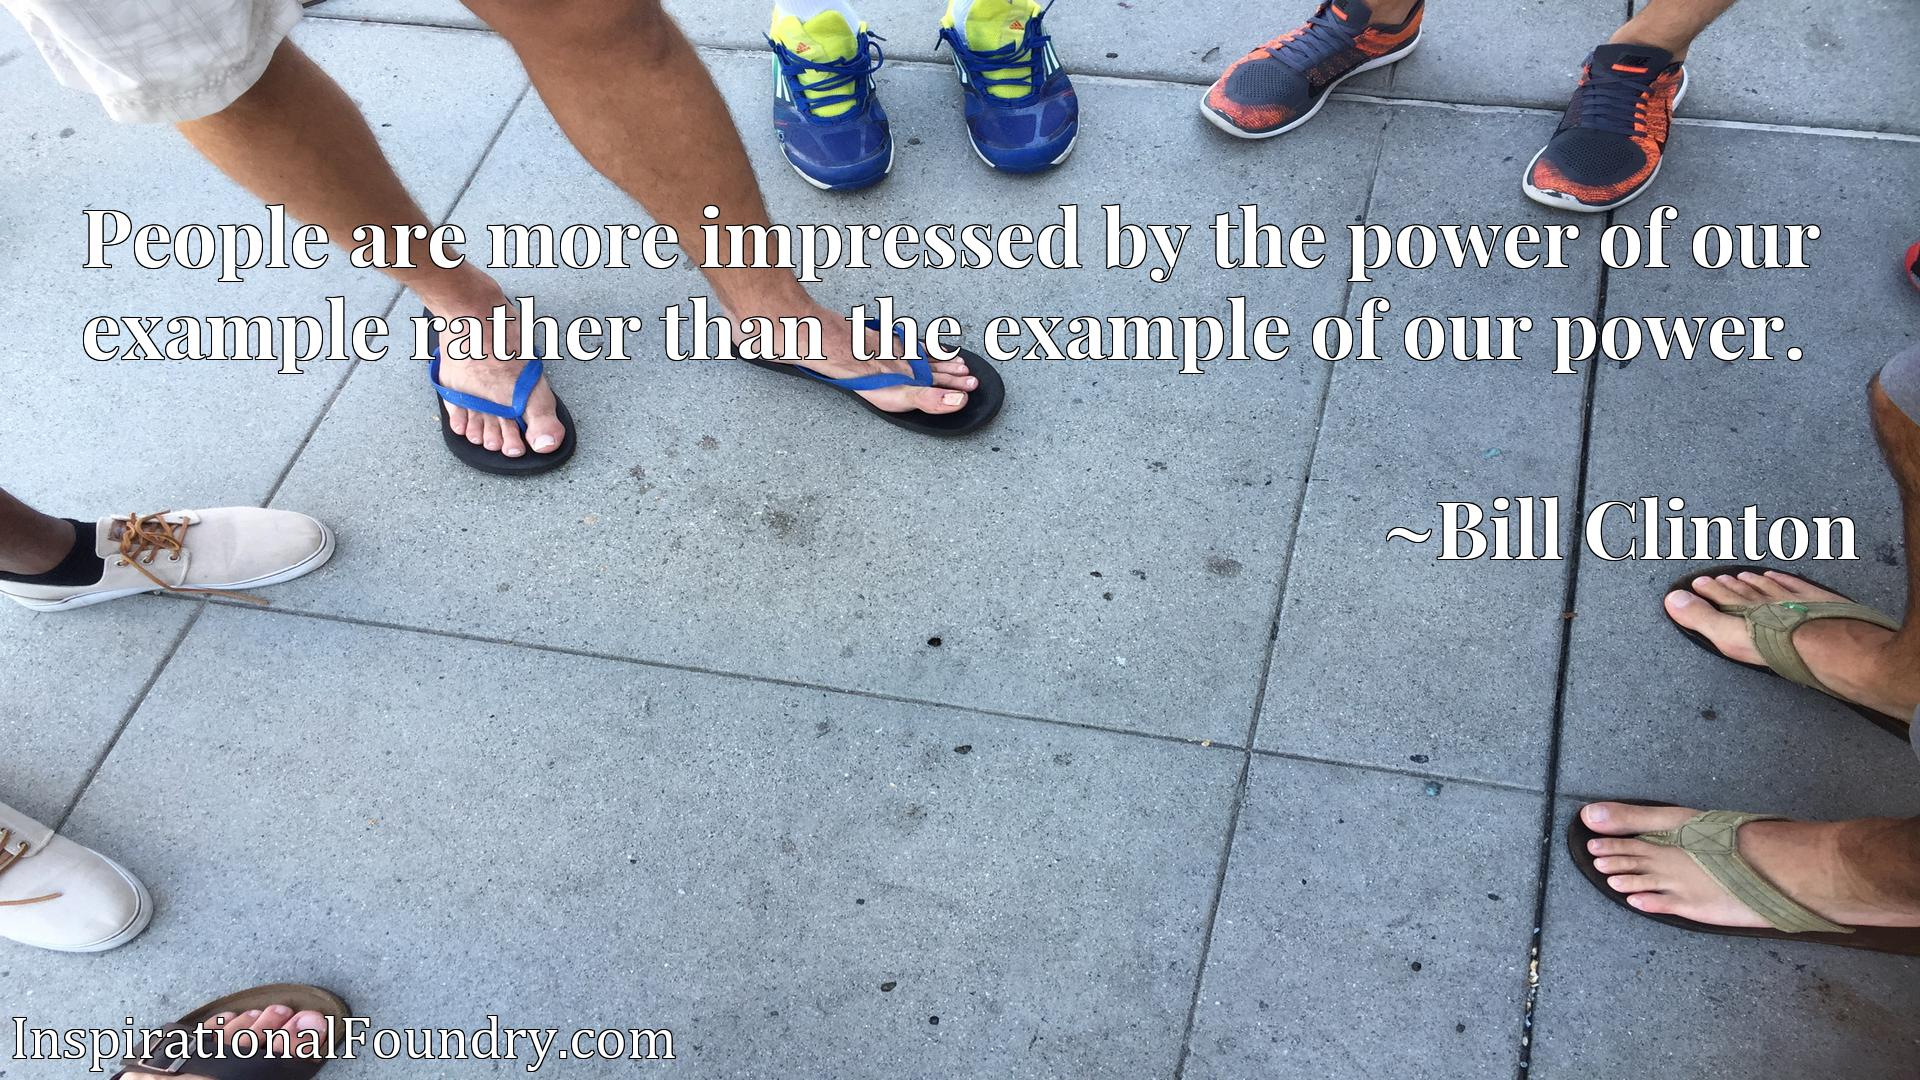 People are more impressed by the power of our example rather than the example of our power.